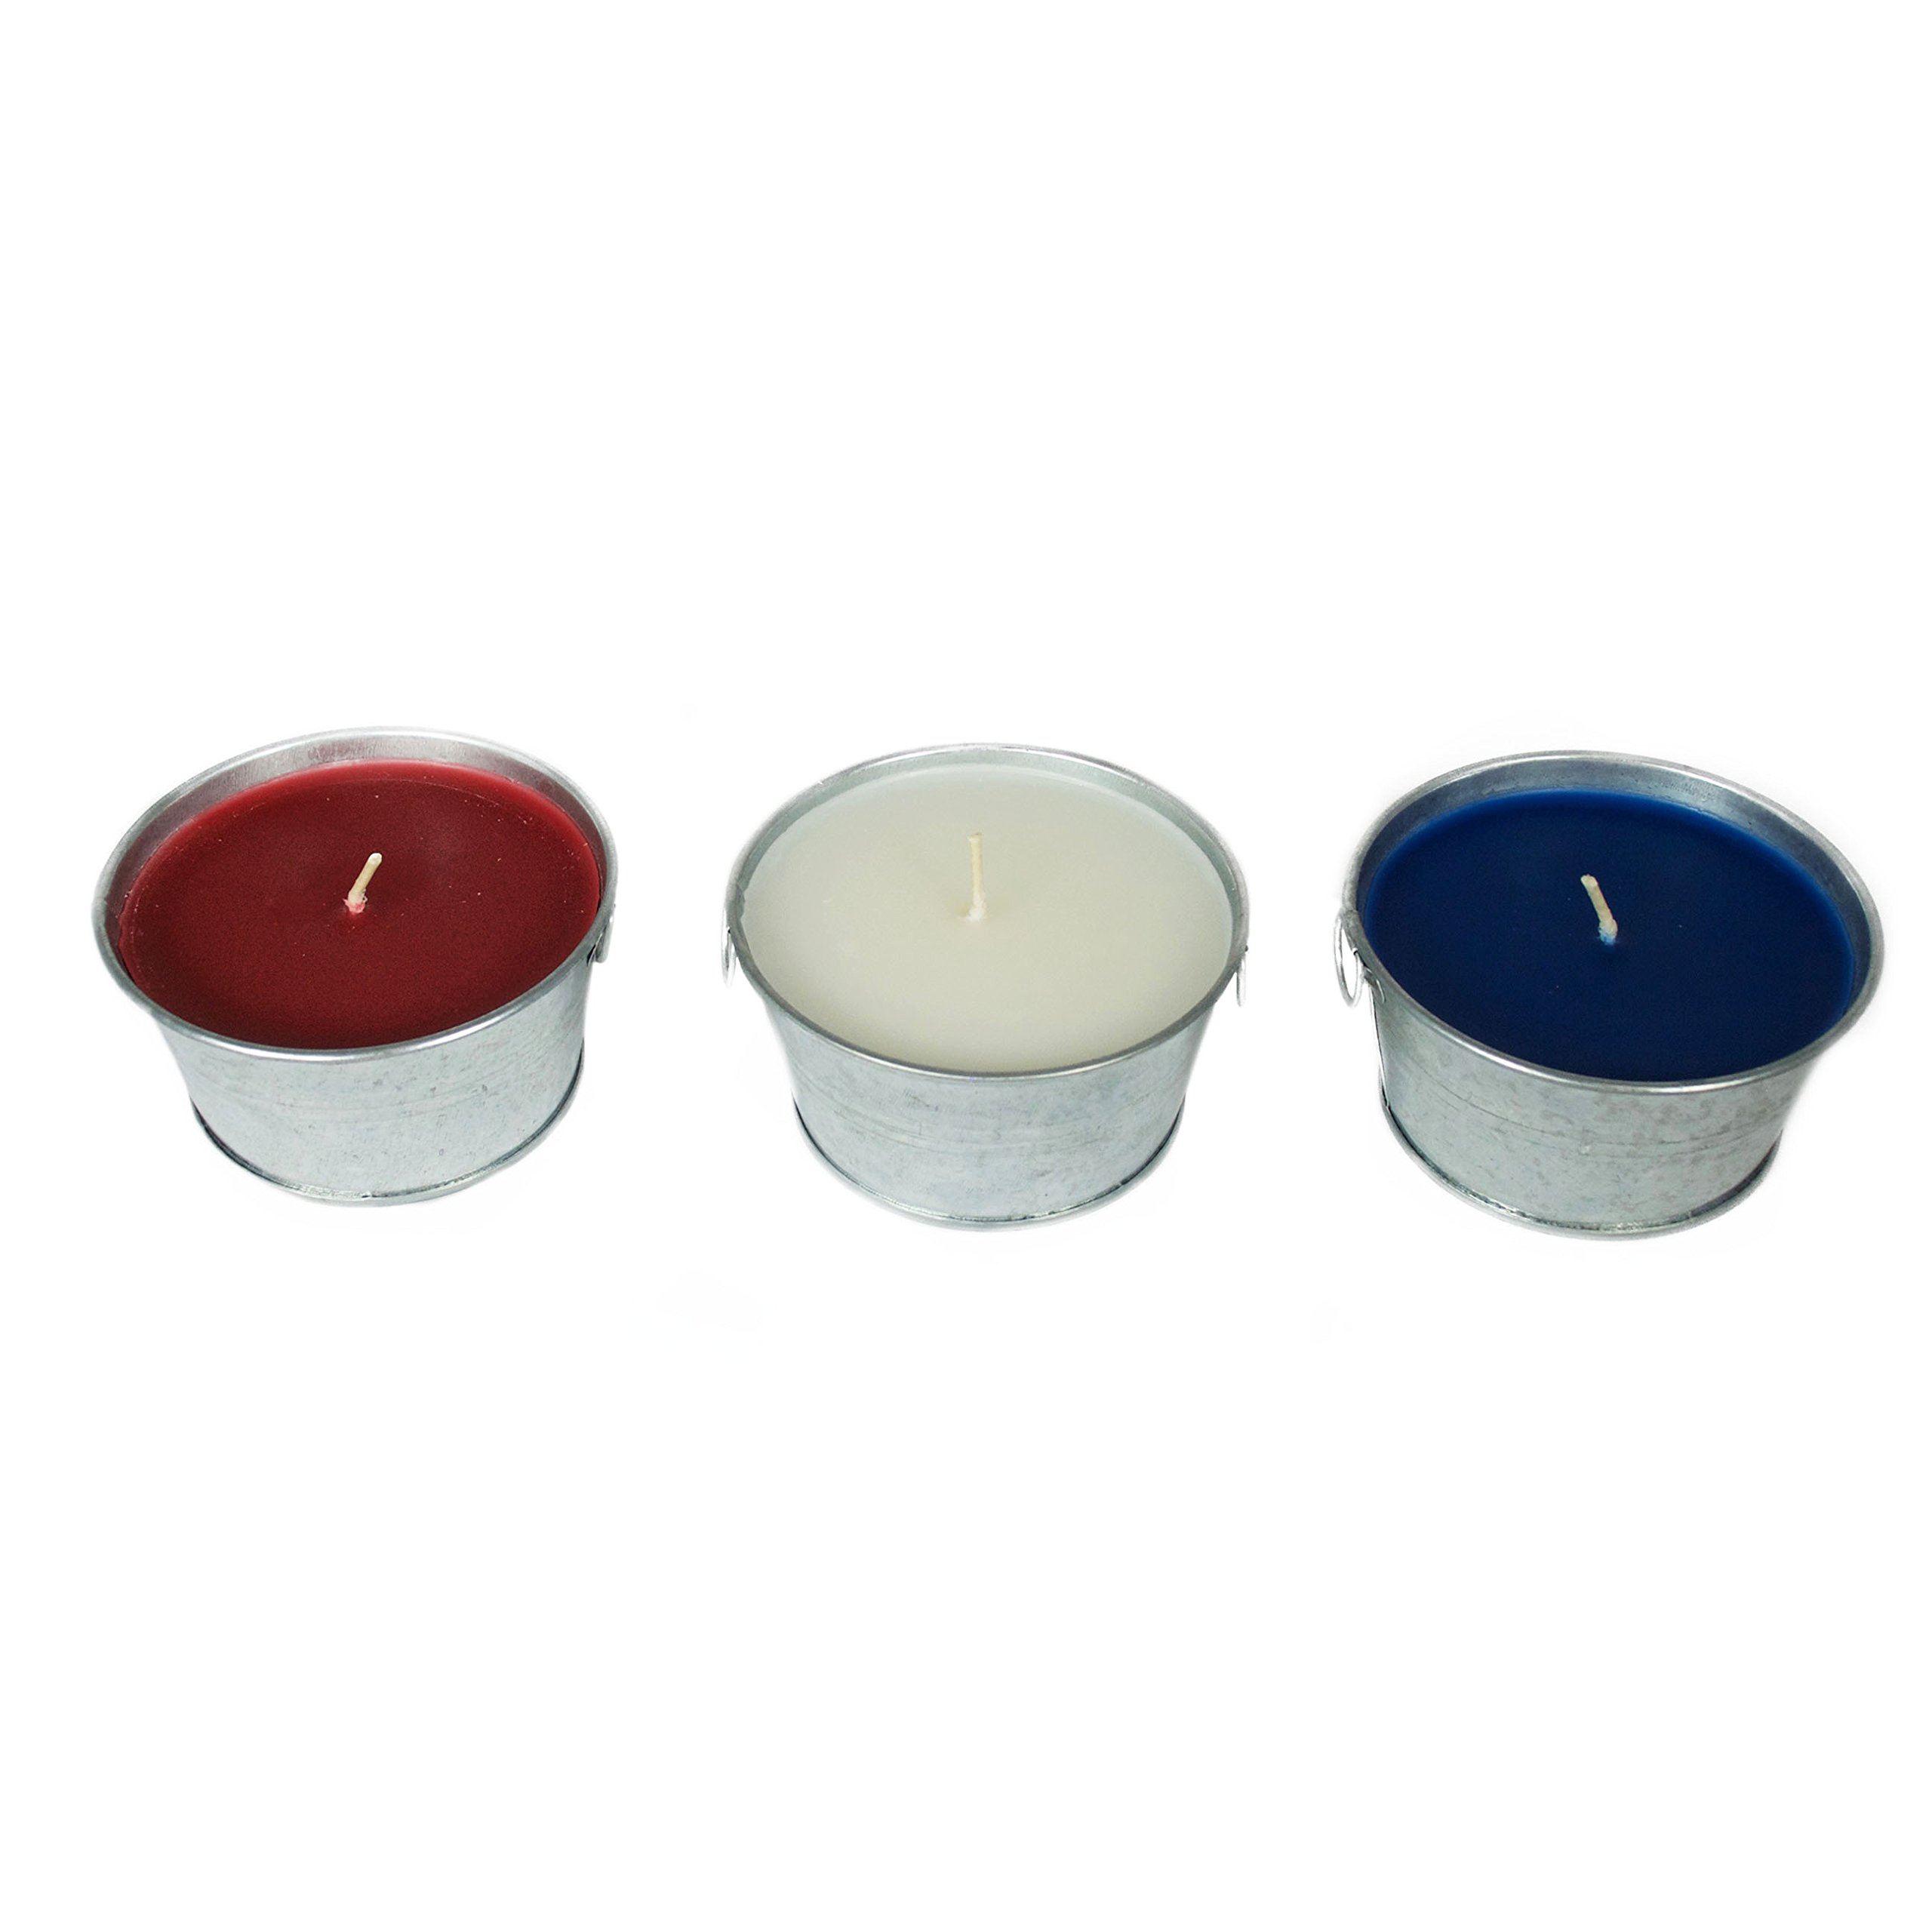 Patio Companion P09648 Outdoor Lighting and Bug Repellent Citronella Candle, Red, White and Blue